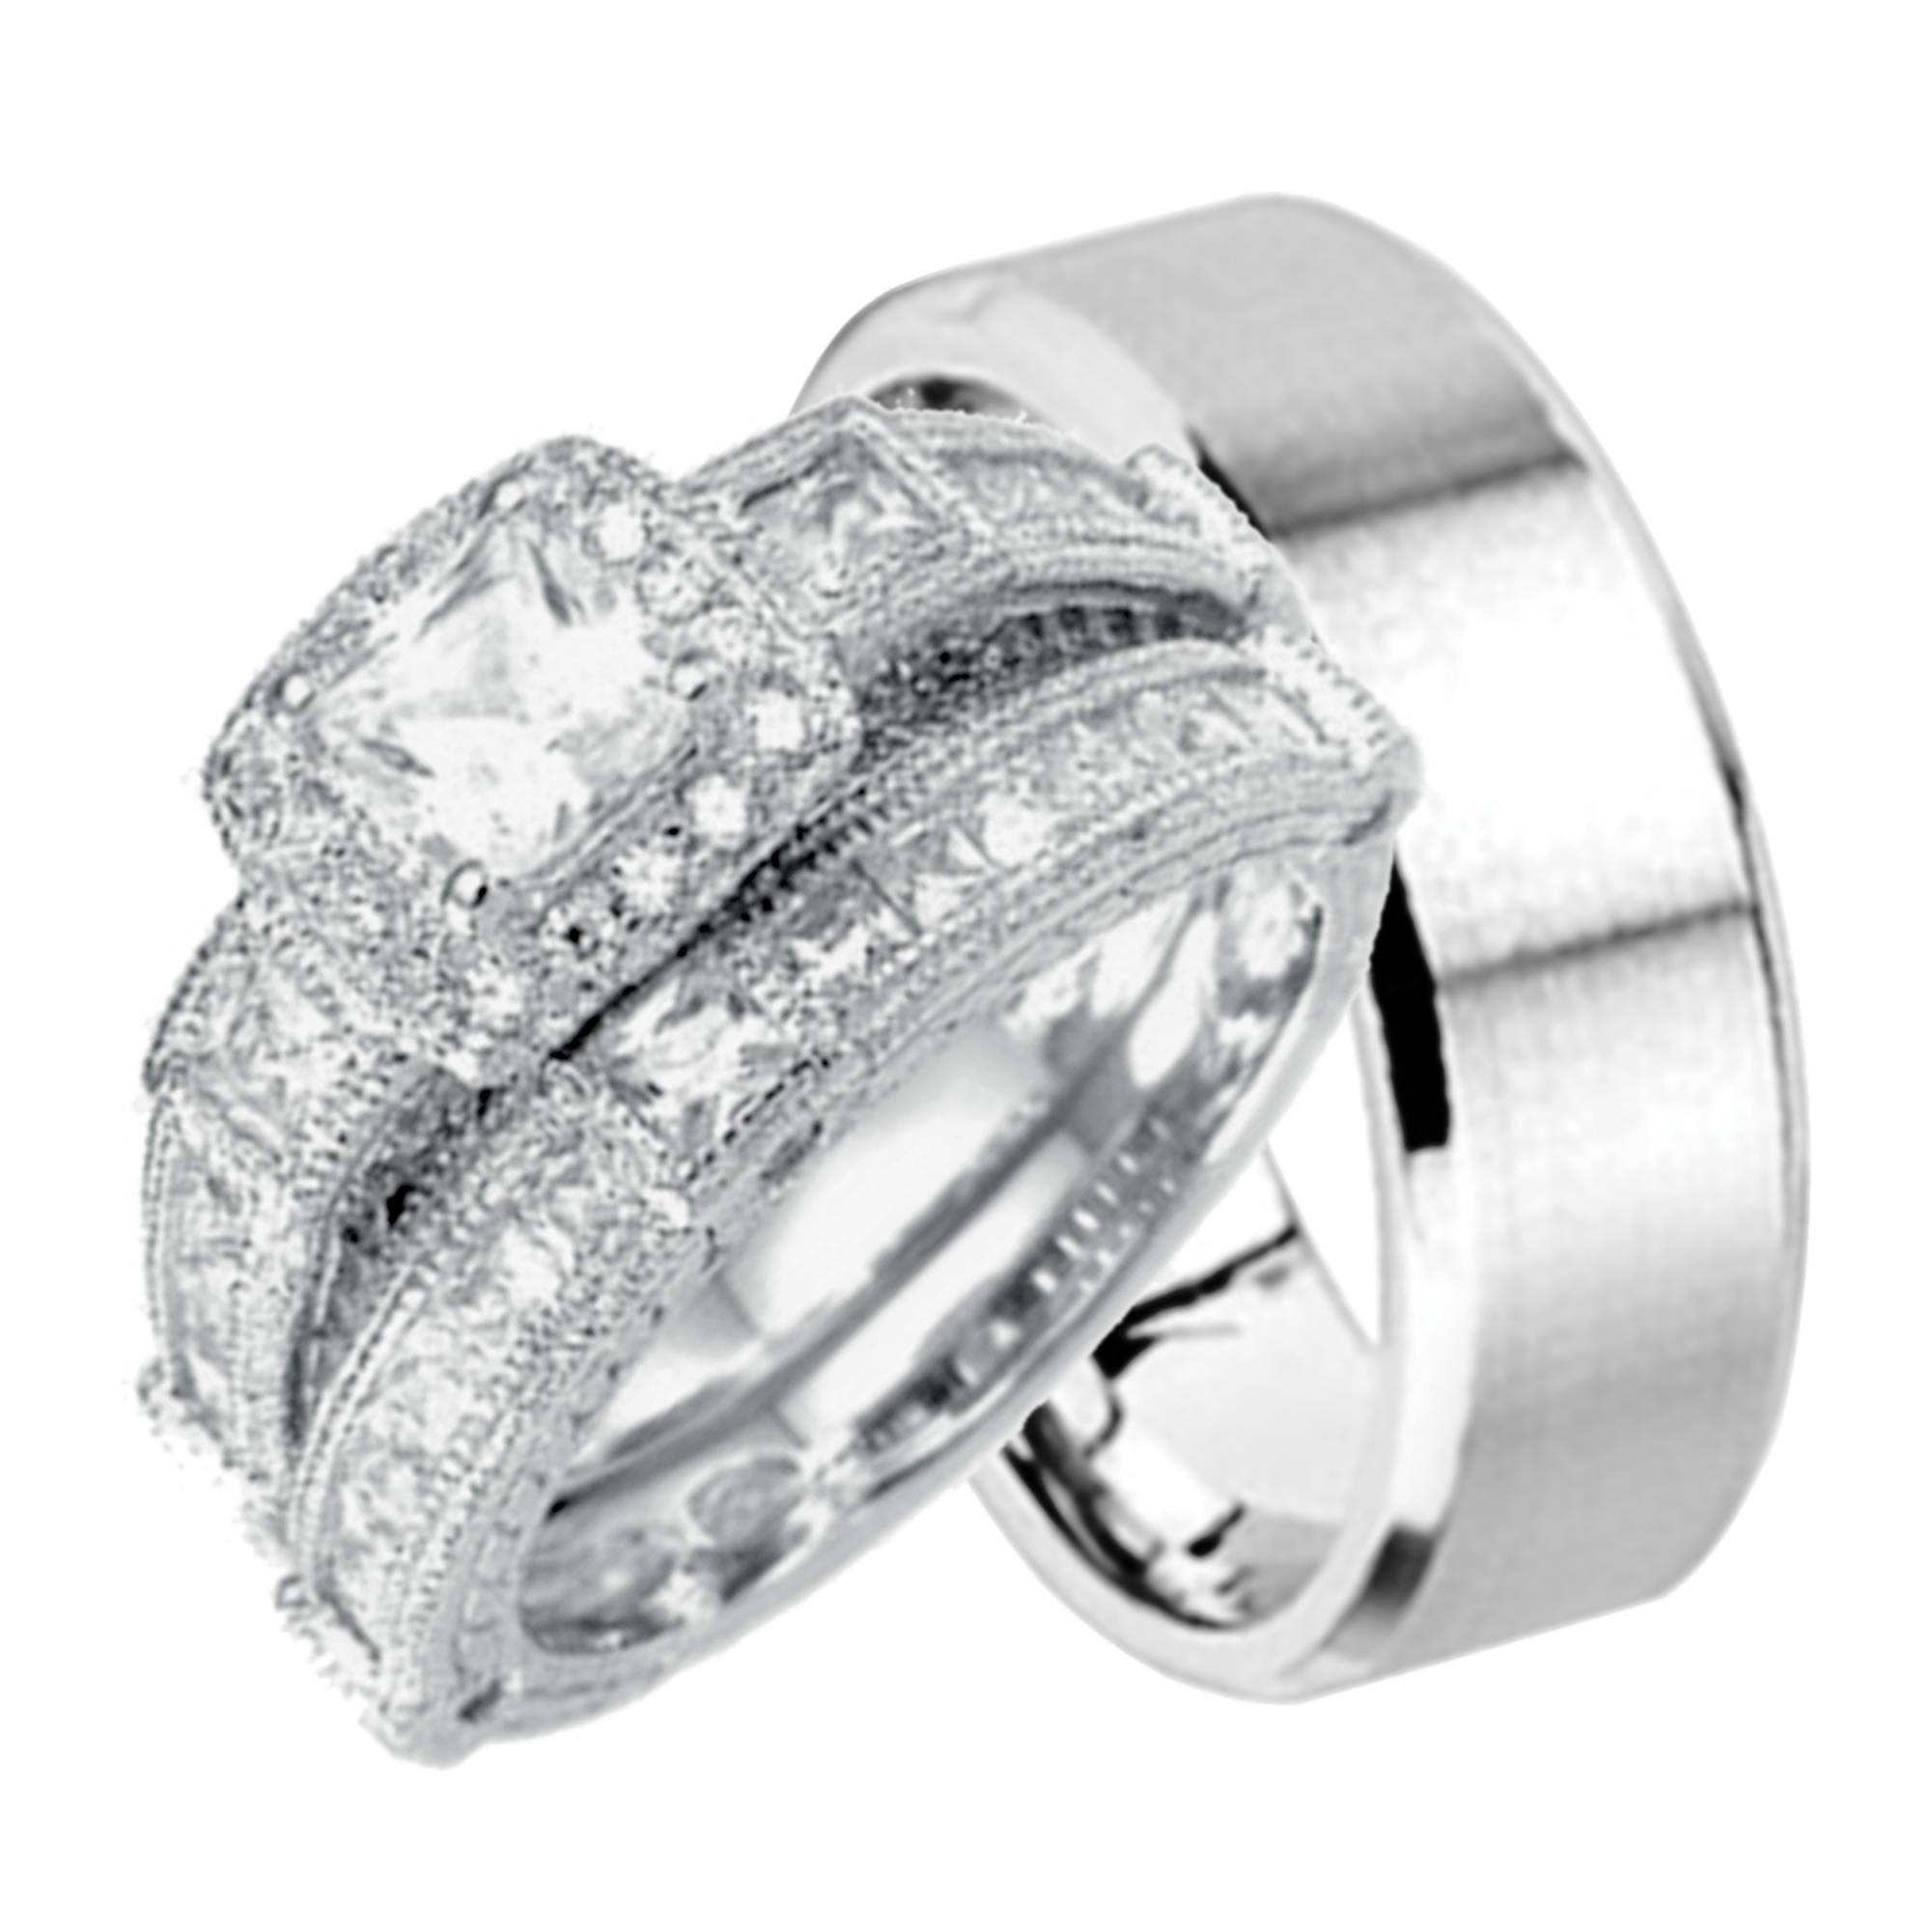 Wedding Ring Sets For Him & Her Within Wedding Bands Sets For Him And Her (View 9 of 15)